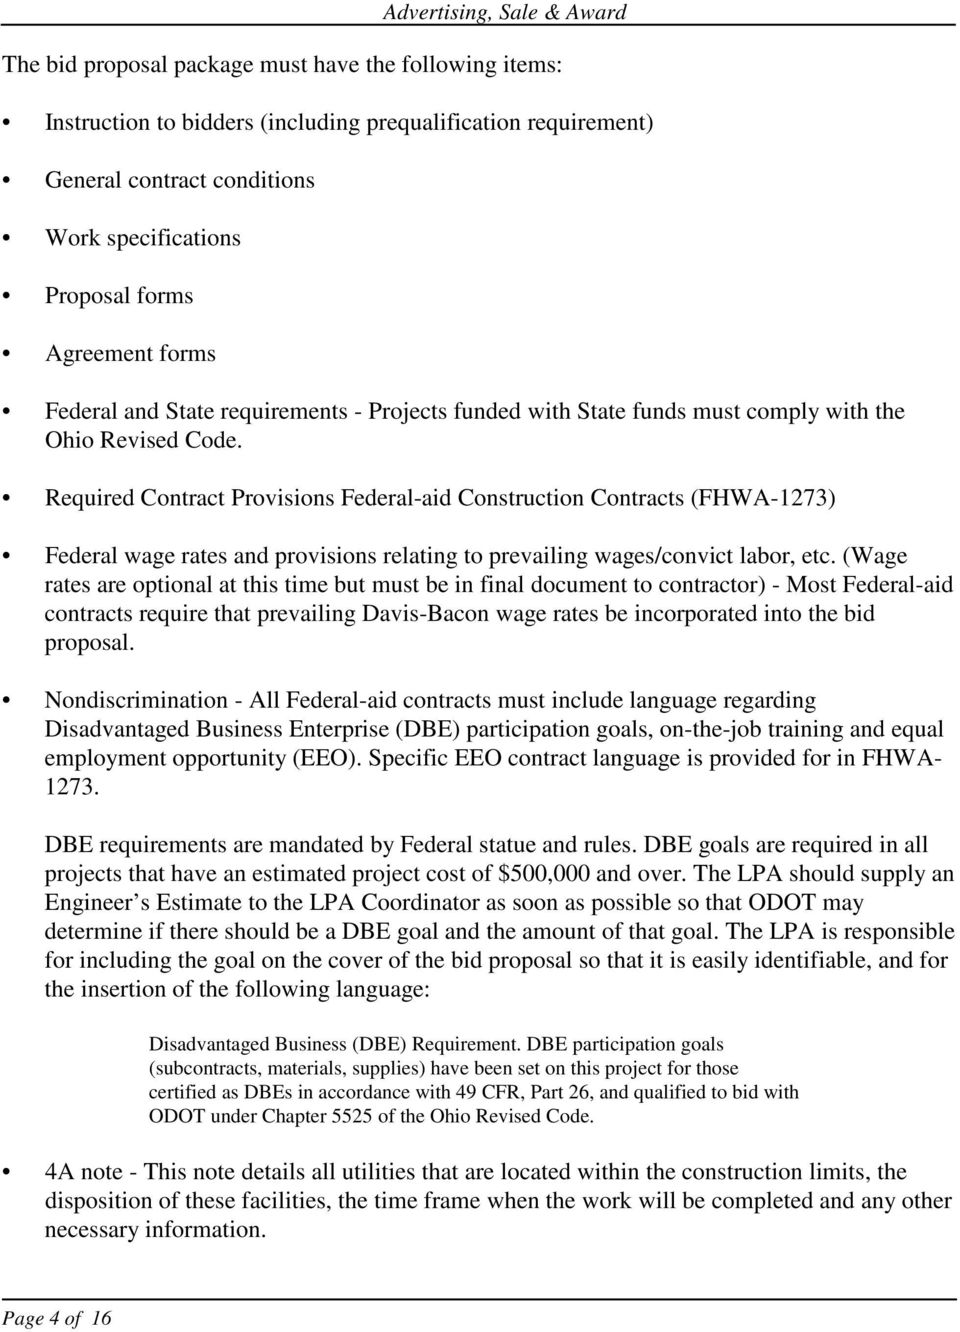 Required Contract Provisions Federal-aid Construction Contracts (FHWA-1273) Federal wage rates and provisions relating to prevailing wages/convict labor, etc.